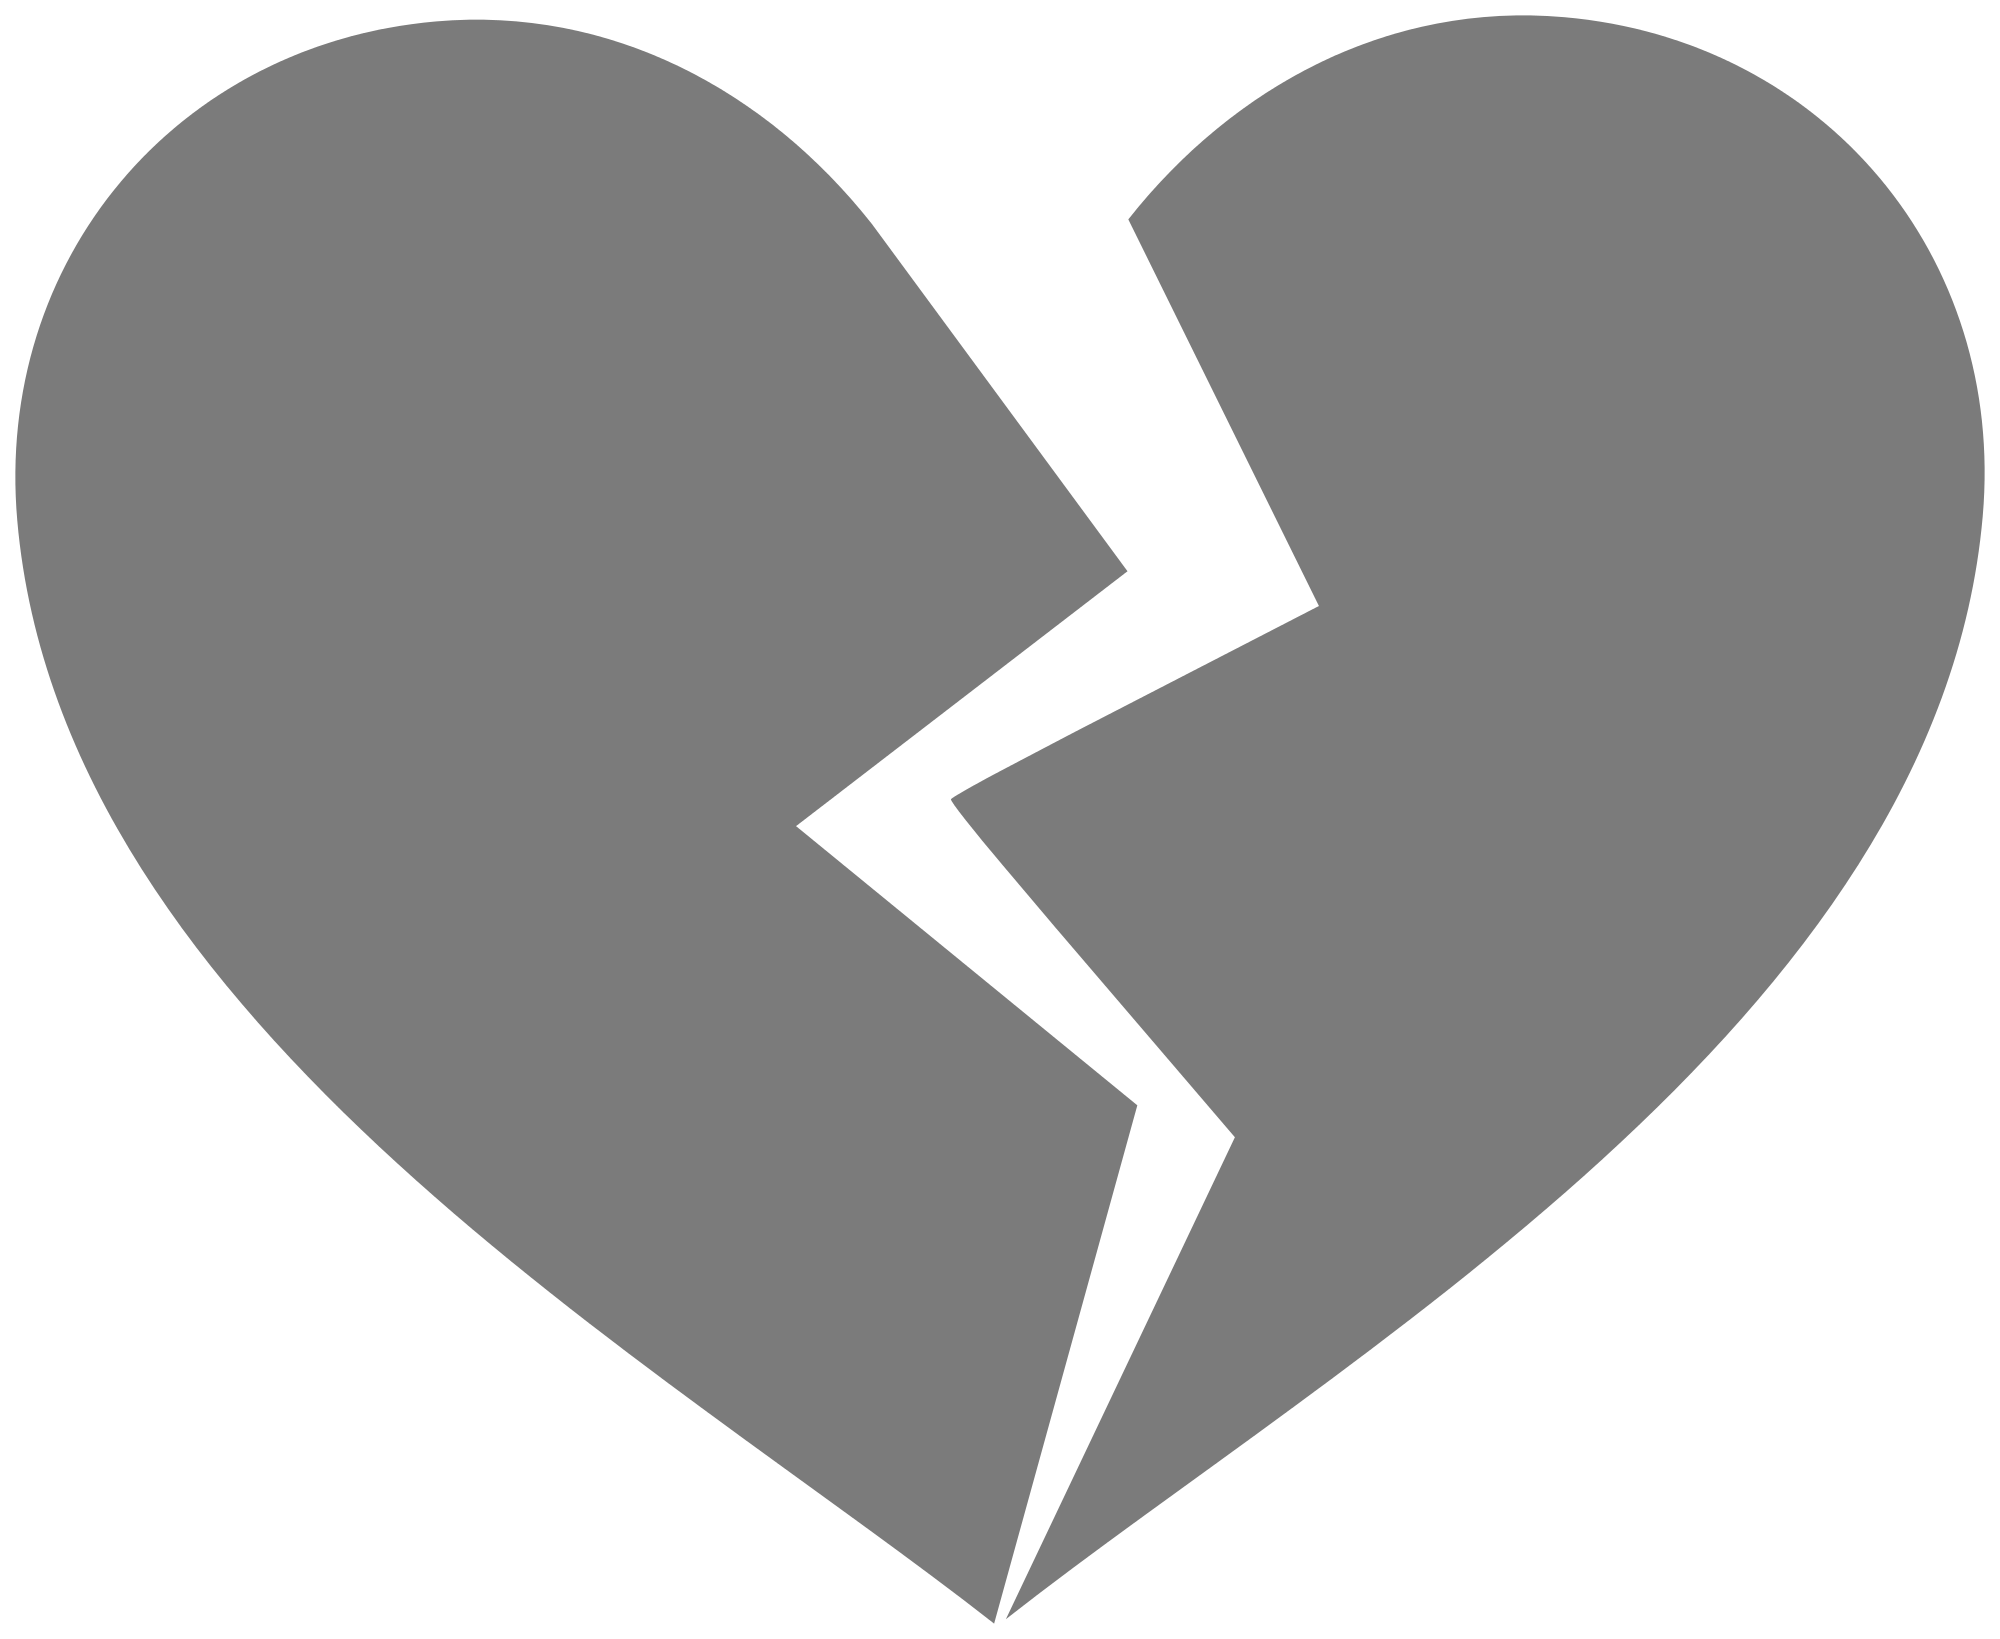 Gray heart clipart png royalty free stock Broken Heart Clipart Free Download Clip Art - carwad.net png royalty free stock